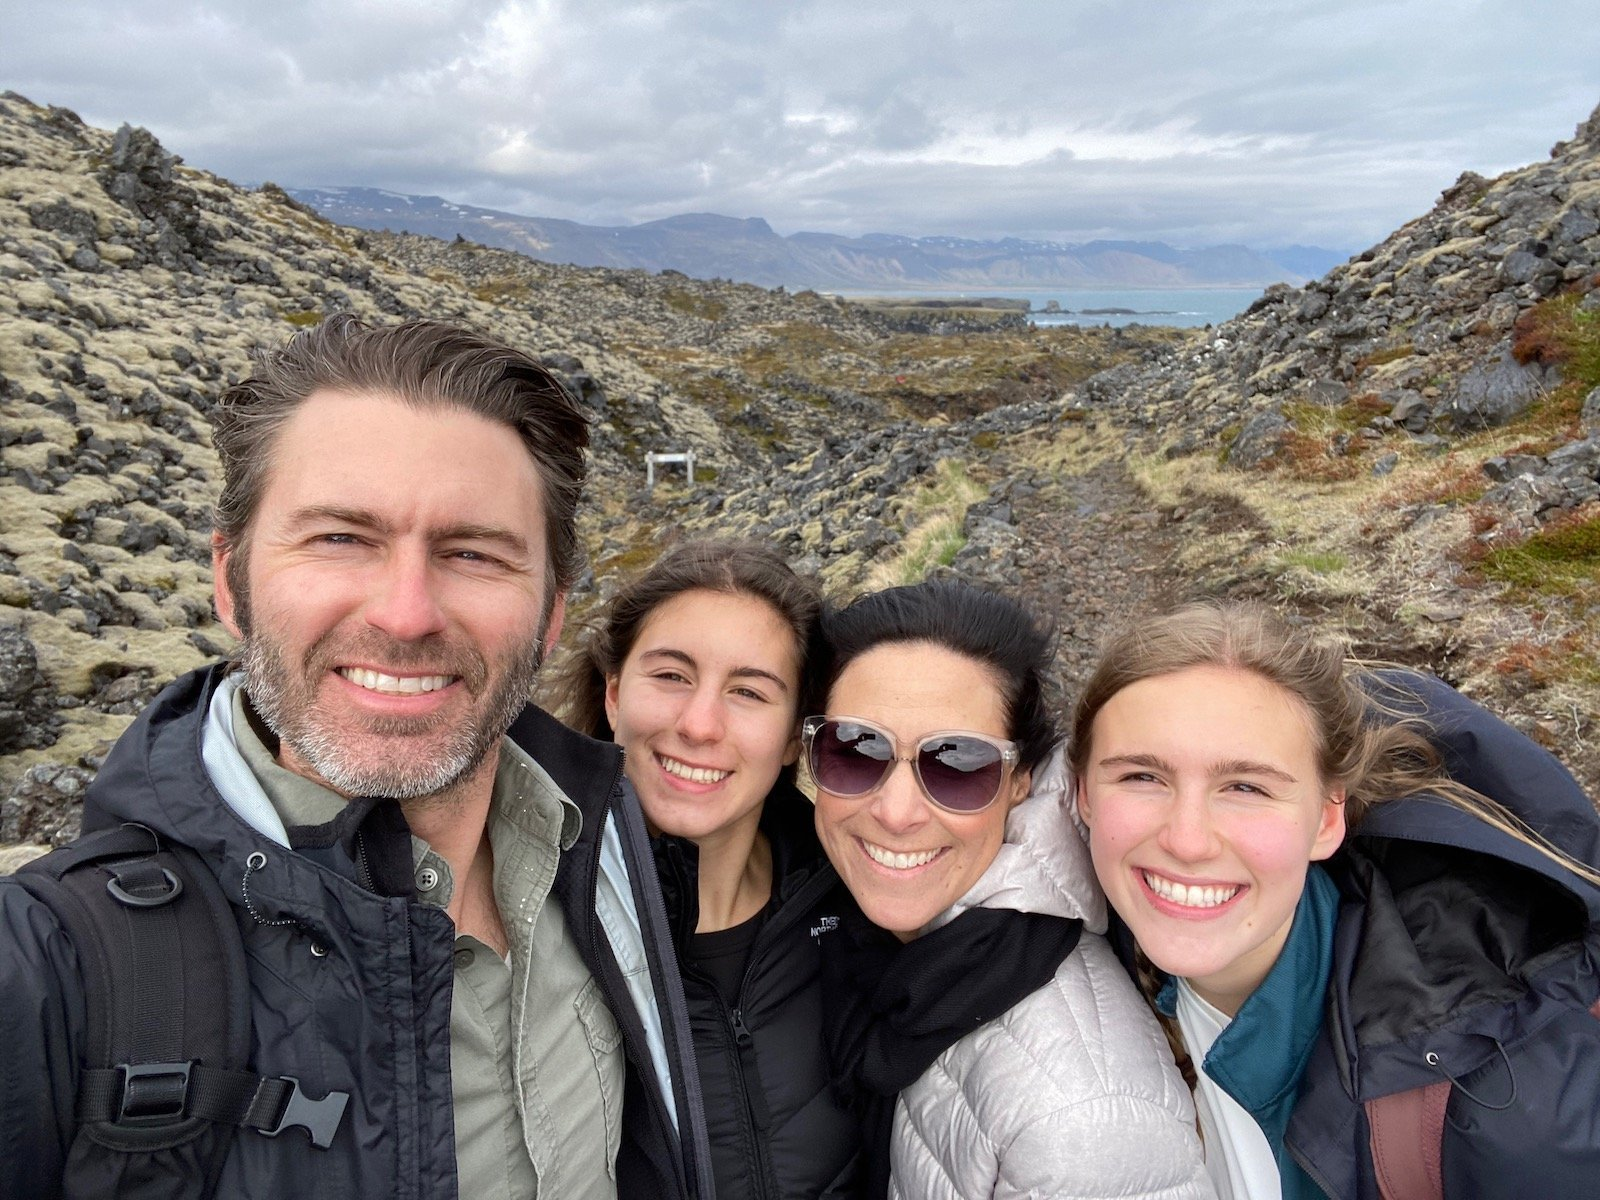 Family portrait with scenic views in the background in Iceland.